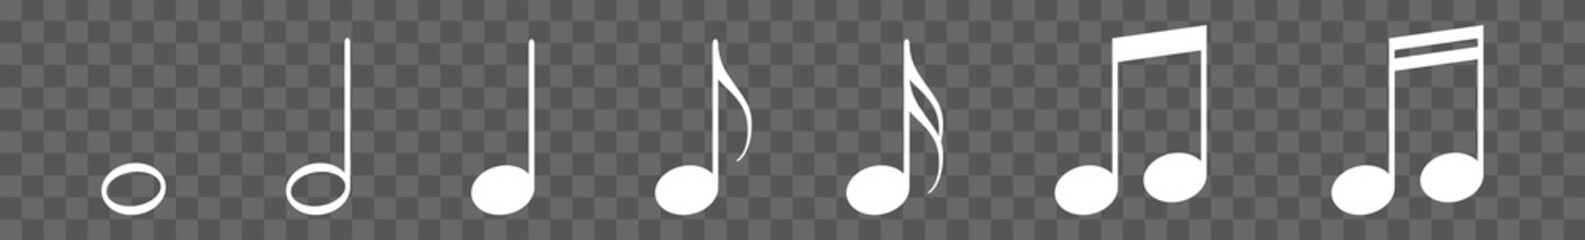 Music Notes Icon White   Note Illustration   Tone Symbol   Sound Logo   Musical Sign   Isolated   Variations